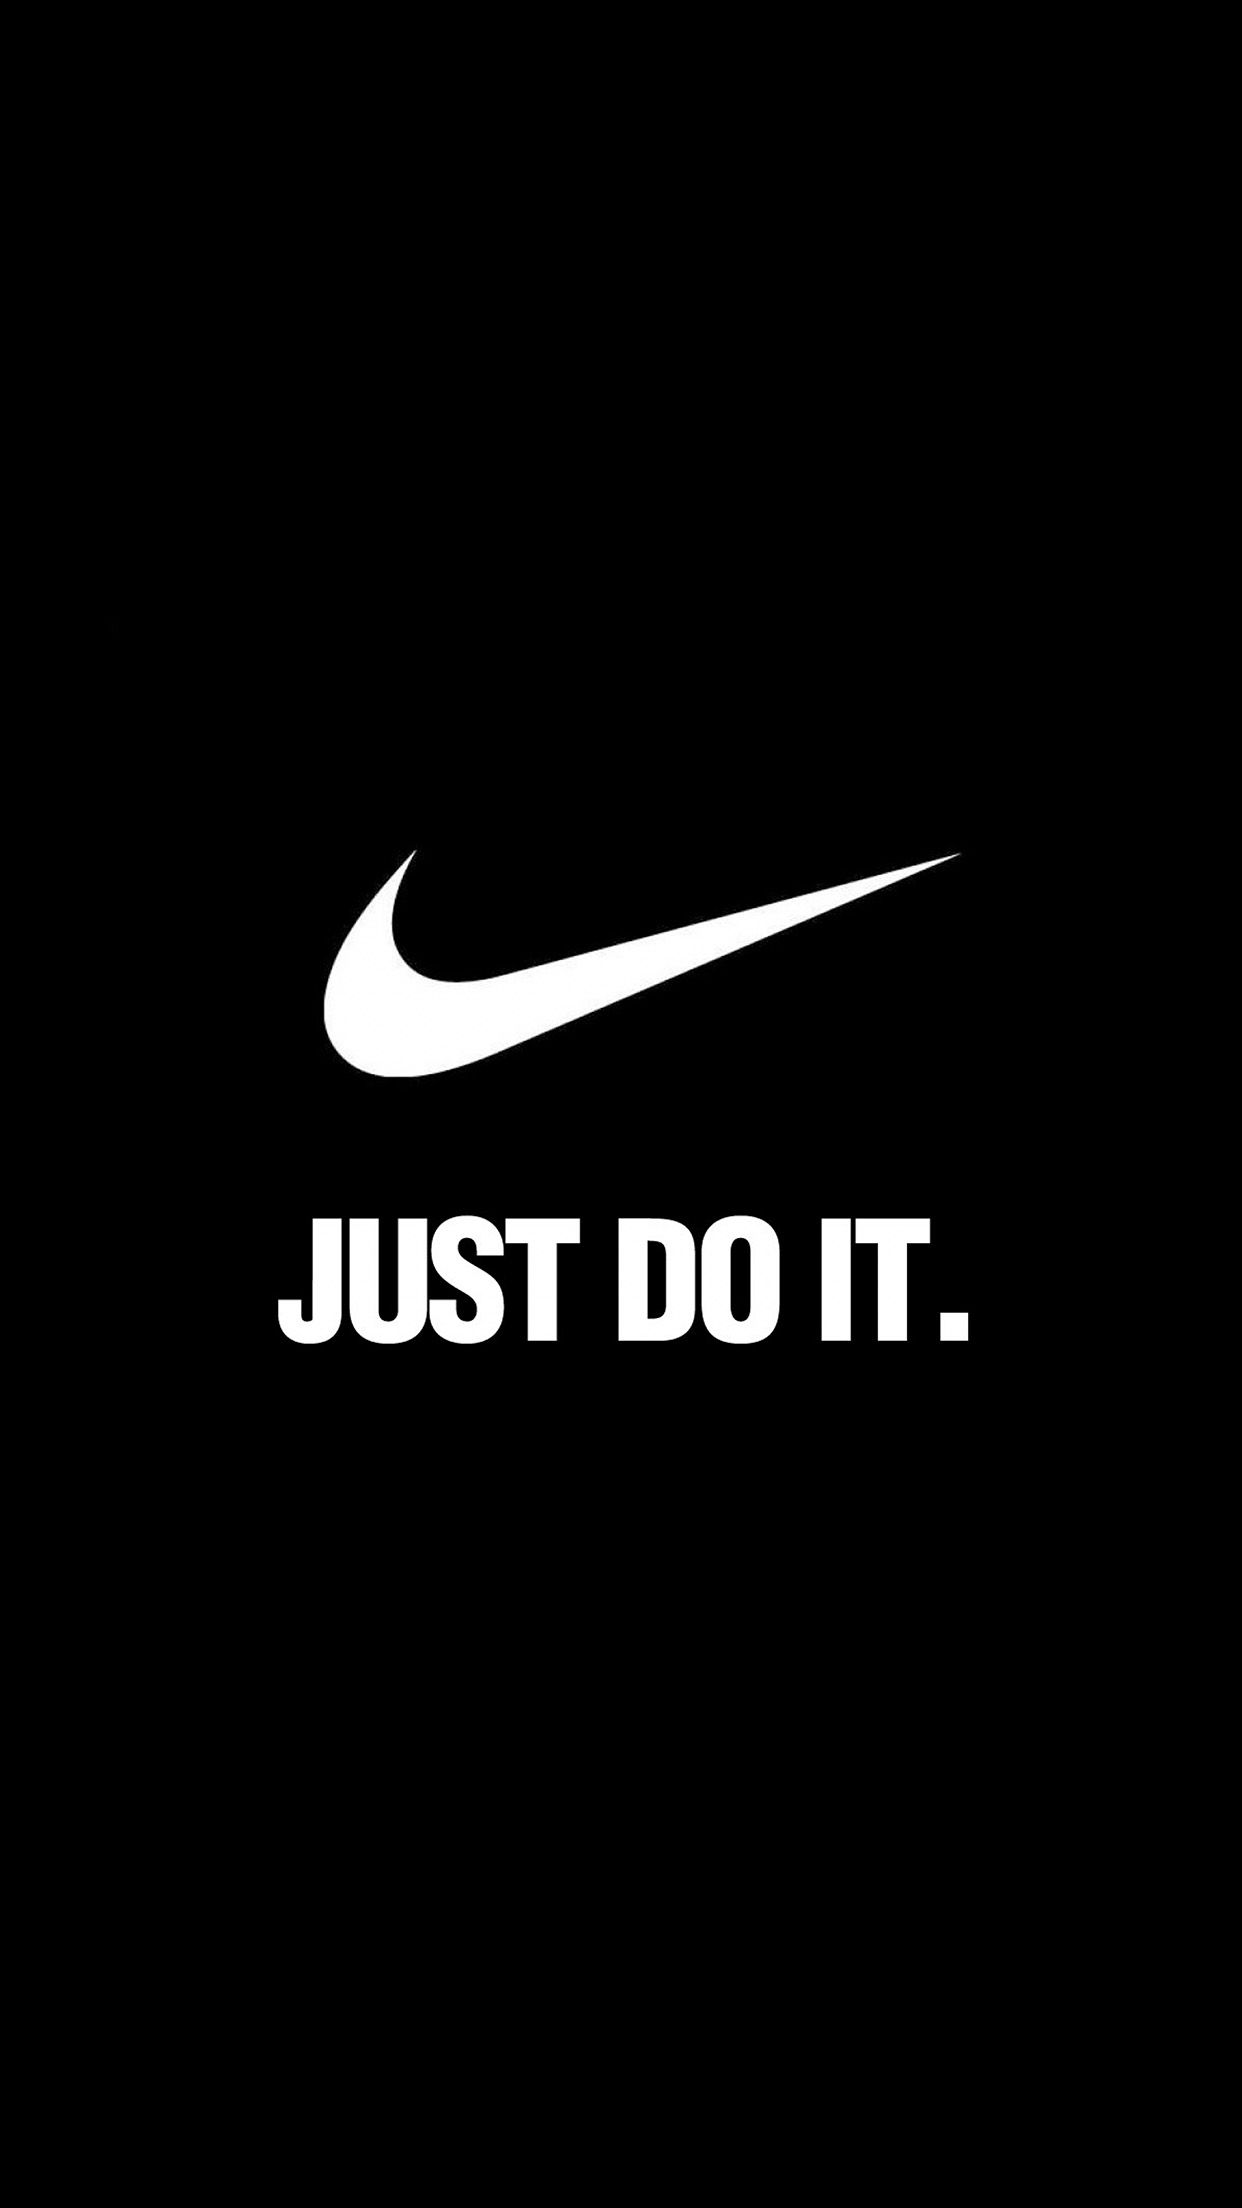 Vans iphone wallpaper tumblr -  Tap And Get The Free App Logo Nike Brand Just Do It Motivation Nike Wallpaper Iphoneiphone Wallpapersvans